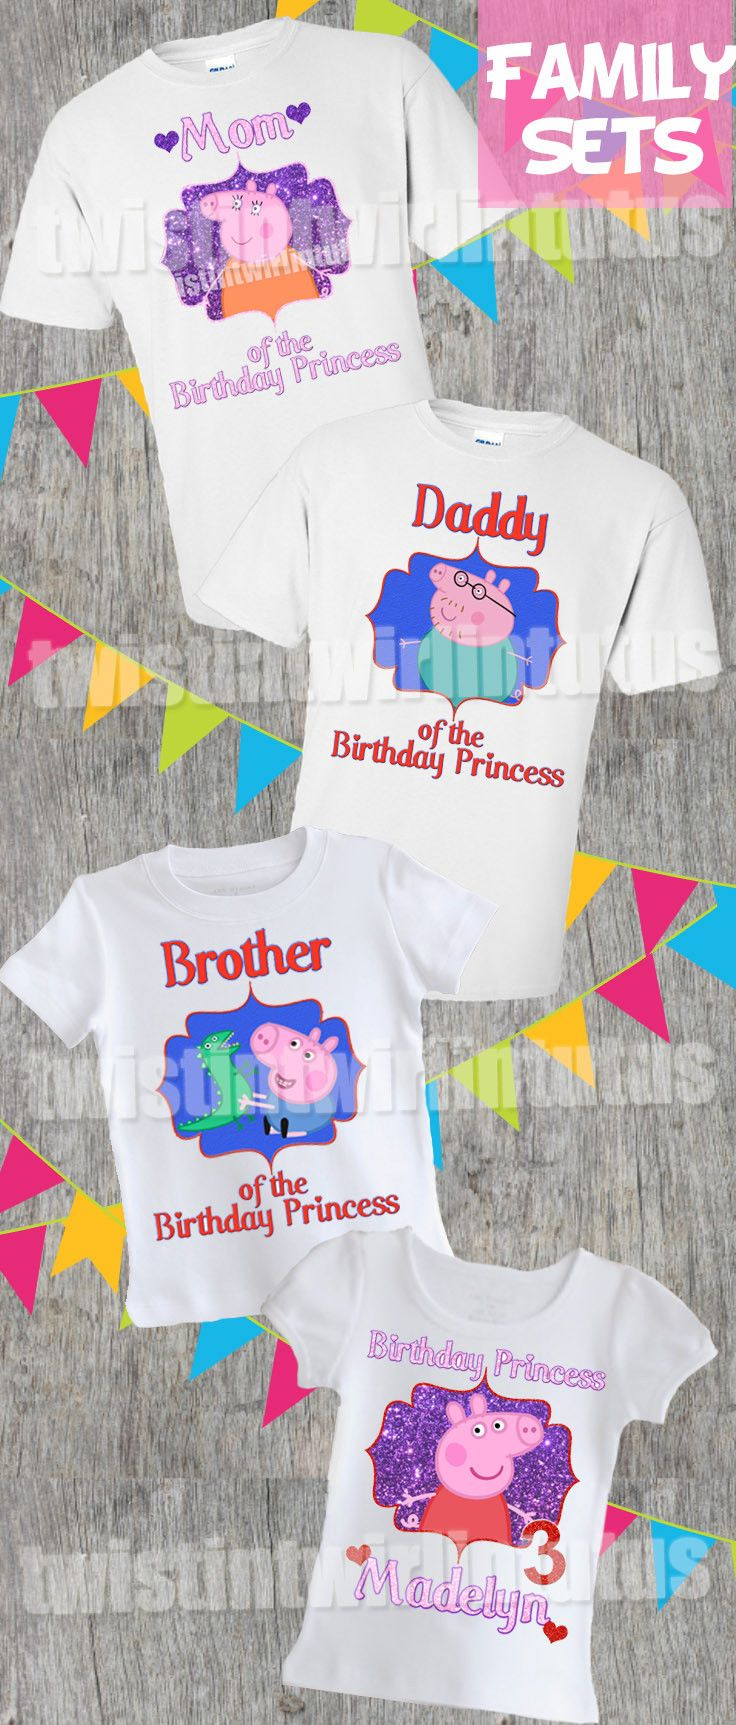 Peppa Pig Family Shirt Set | Peppa Pig Birthday Ideas | Birthday Party Ideas for Girls | Birthday Ideas for Boys | Twistin Twirlin Tutus #peppapigbirthday